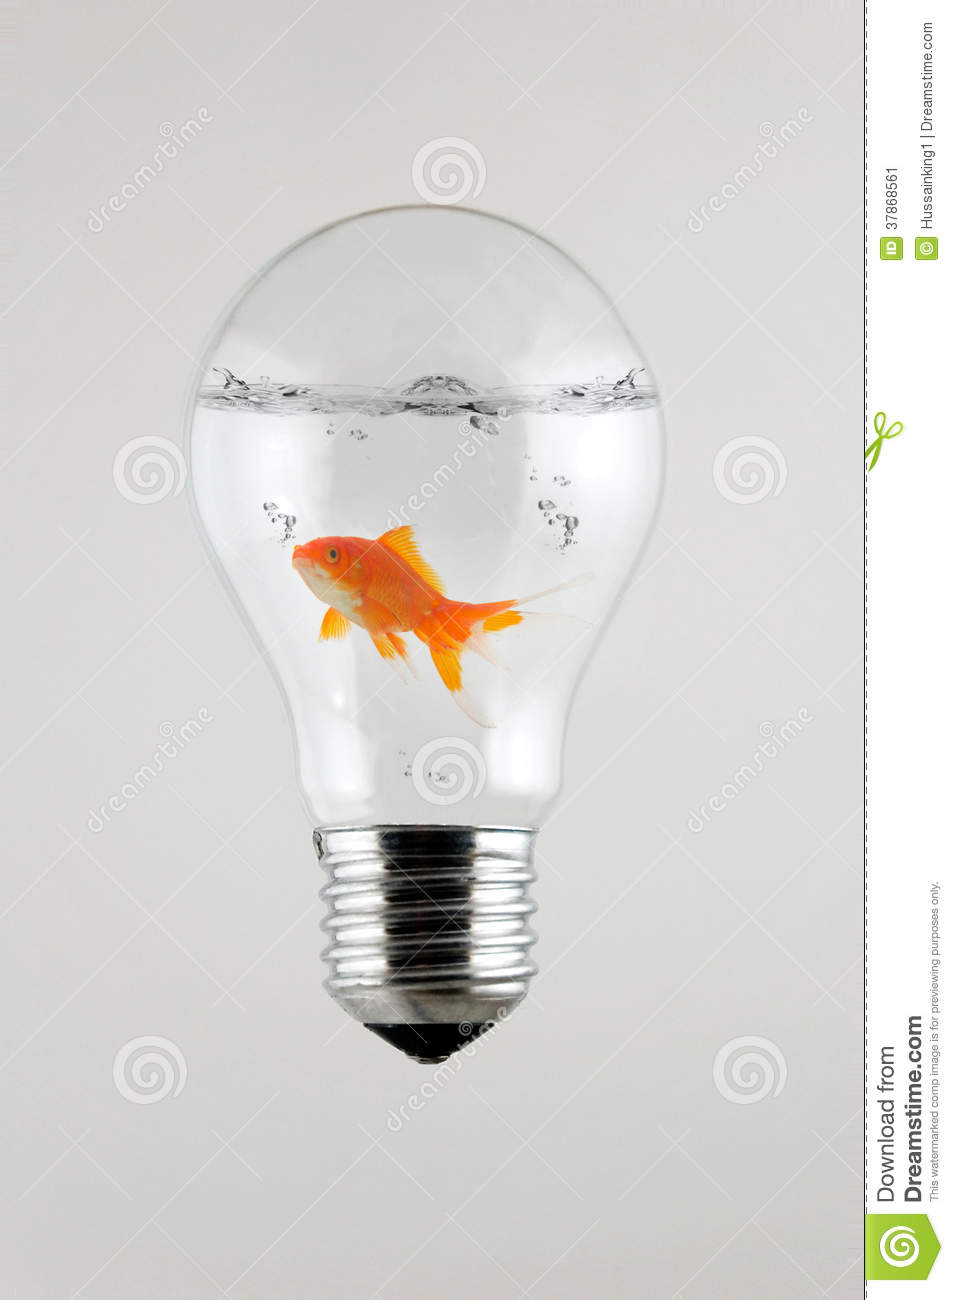 fish inside the light bulb stock image image of electrical 37868561